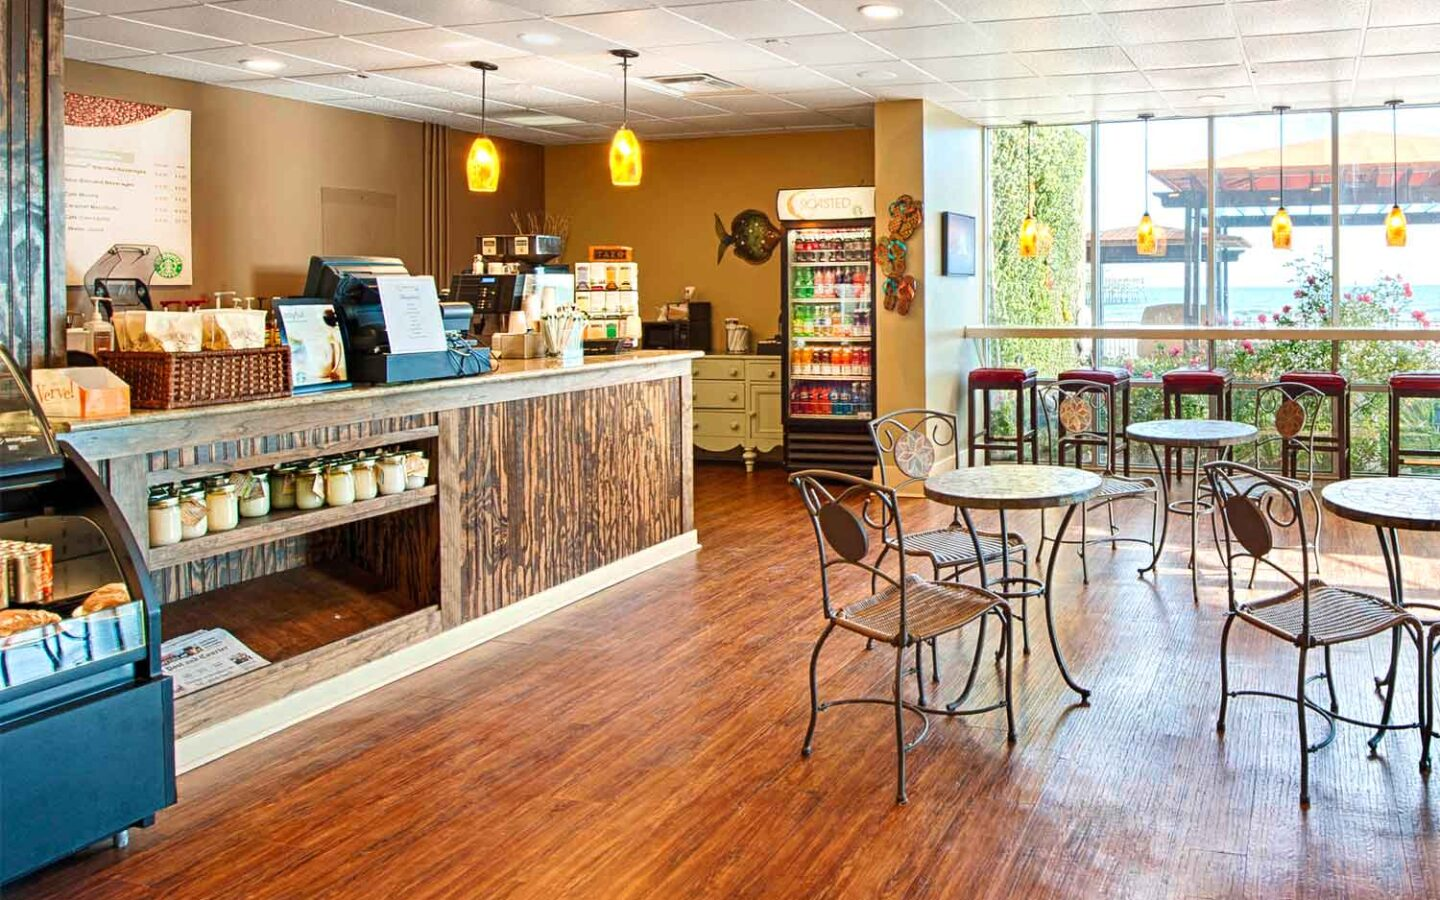 Cafe interior with long wooden table, dining tables and bar top seating